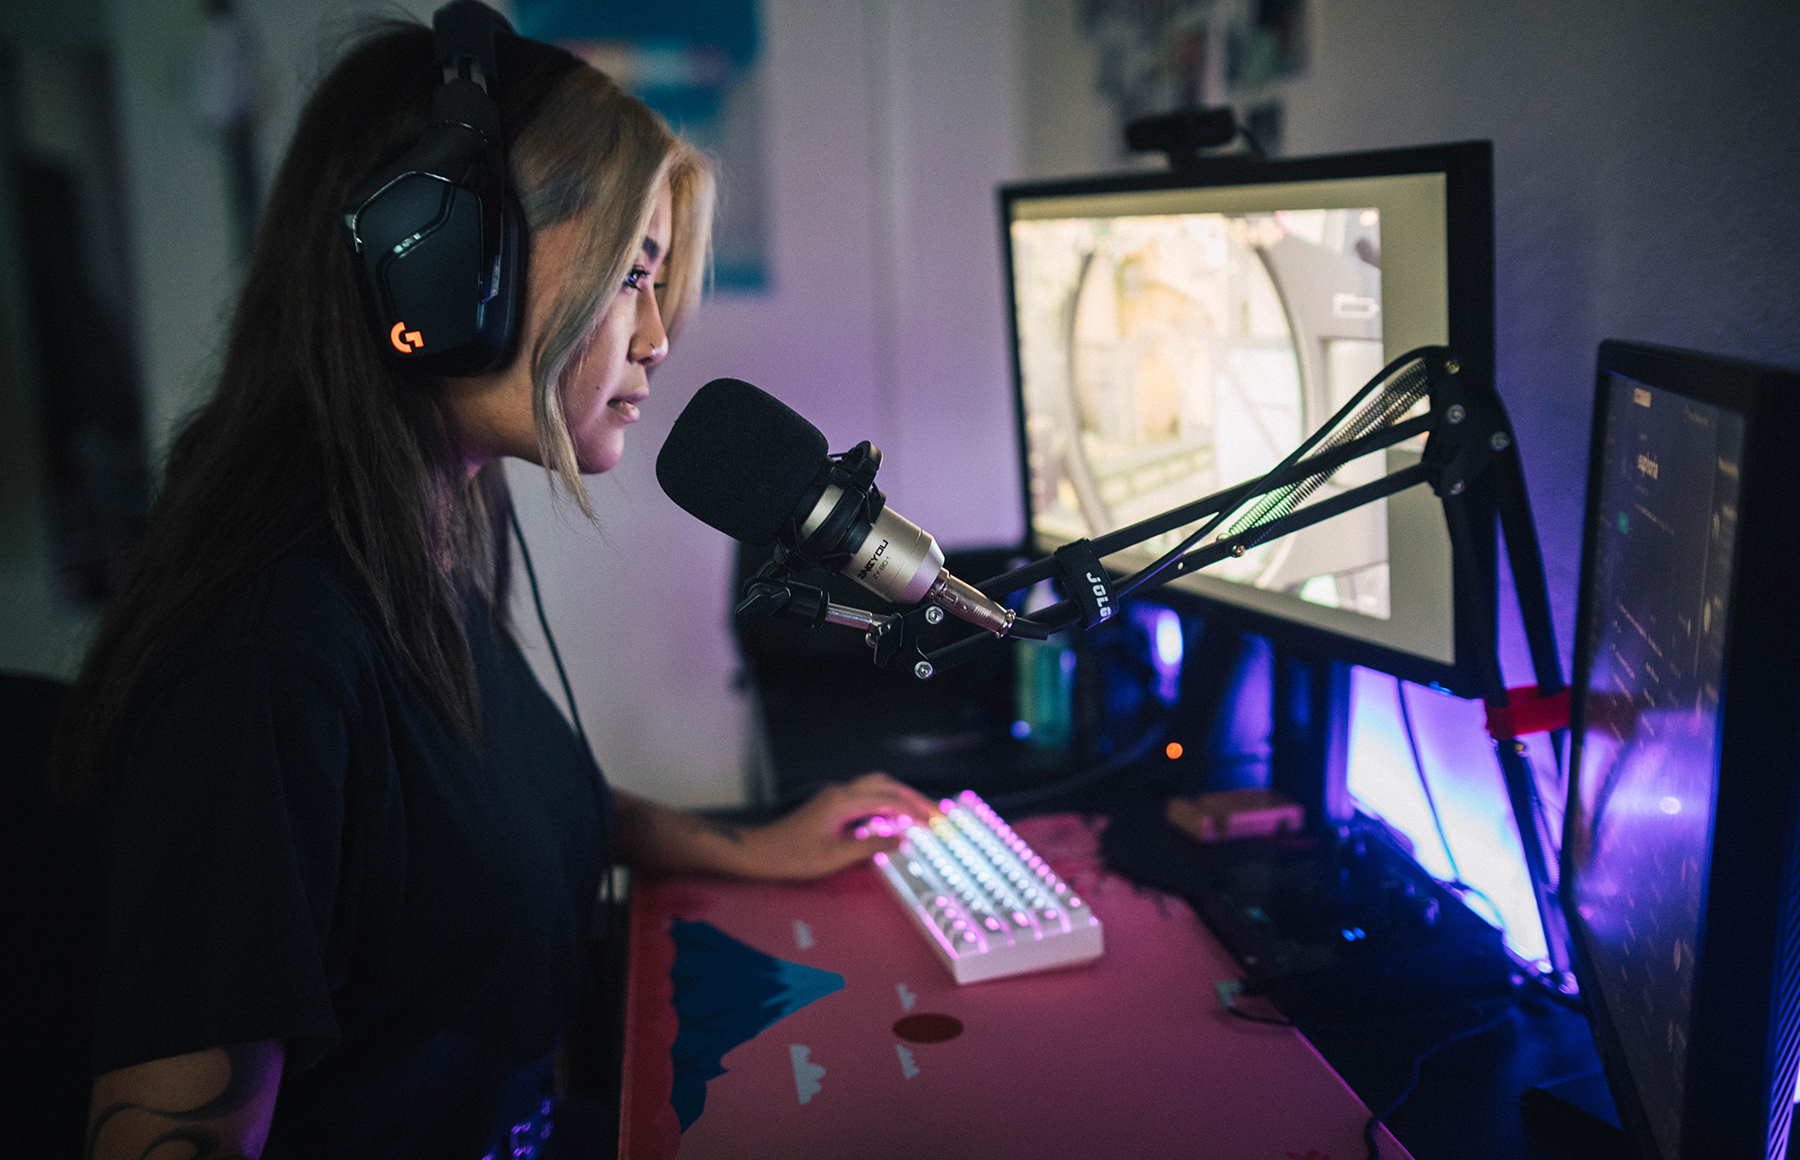 Girl gamers rise up: Combatting sexism in the gaming community